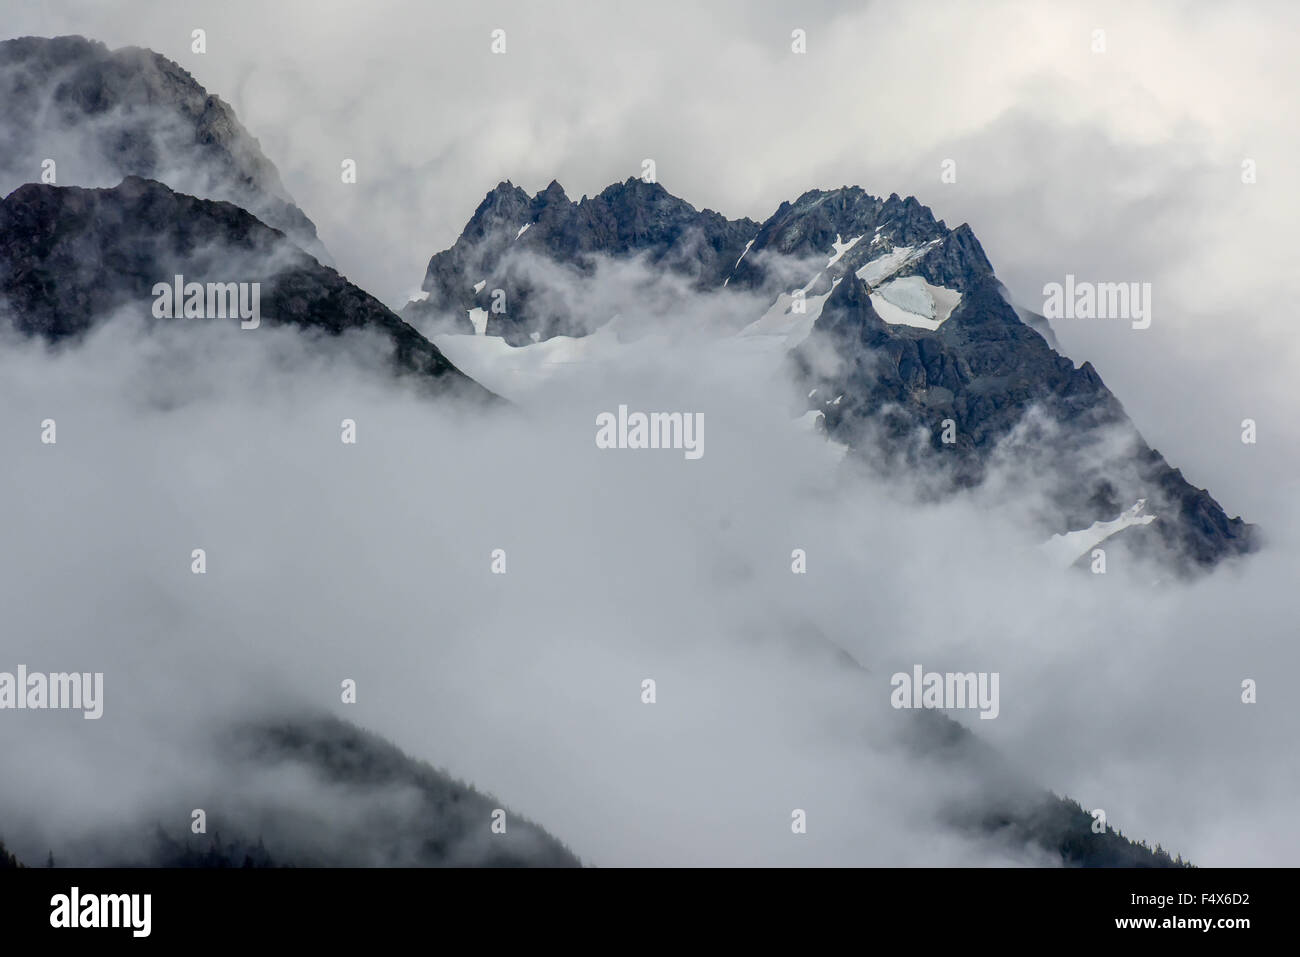 Hanging glaciers and clouds on the mountain tops near port of Skagway Alaska | Lynn Canal fjord cruise - inside - Stock Image